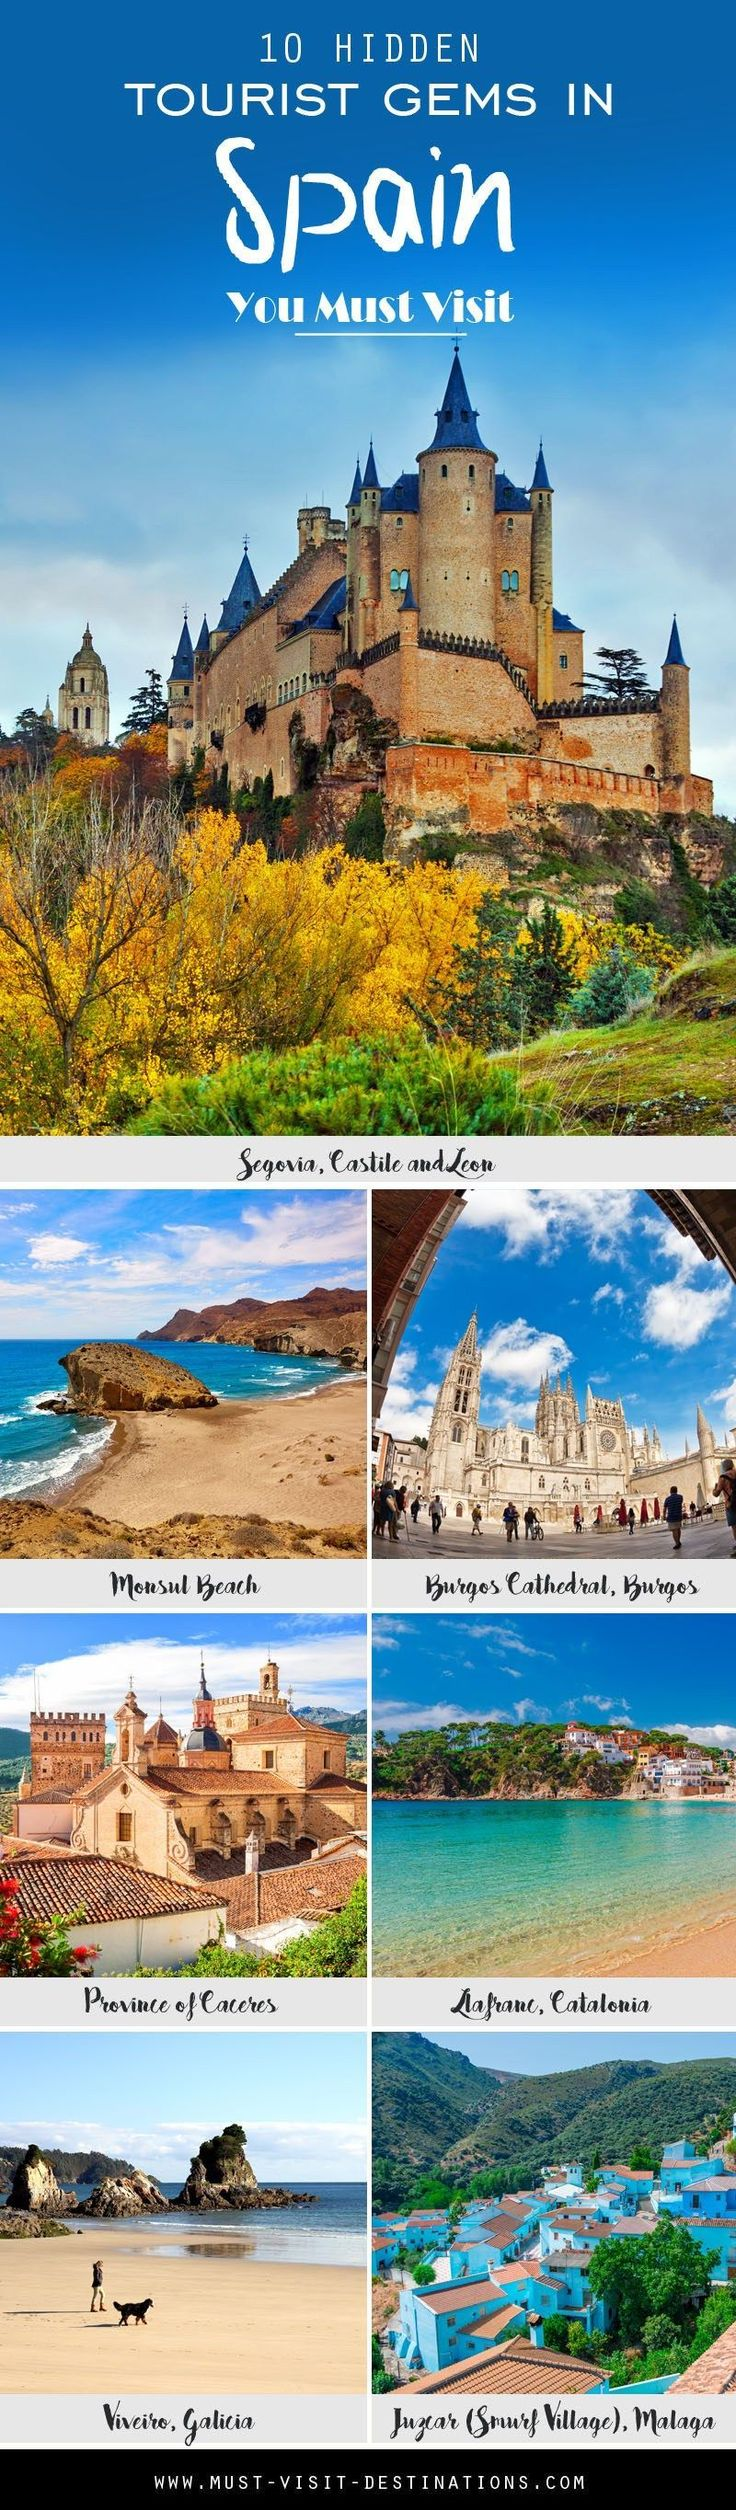 10 Hidden Tourist Gems In Spain You Didn't Know About #travel #spain #travelinspain